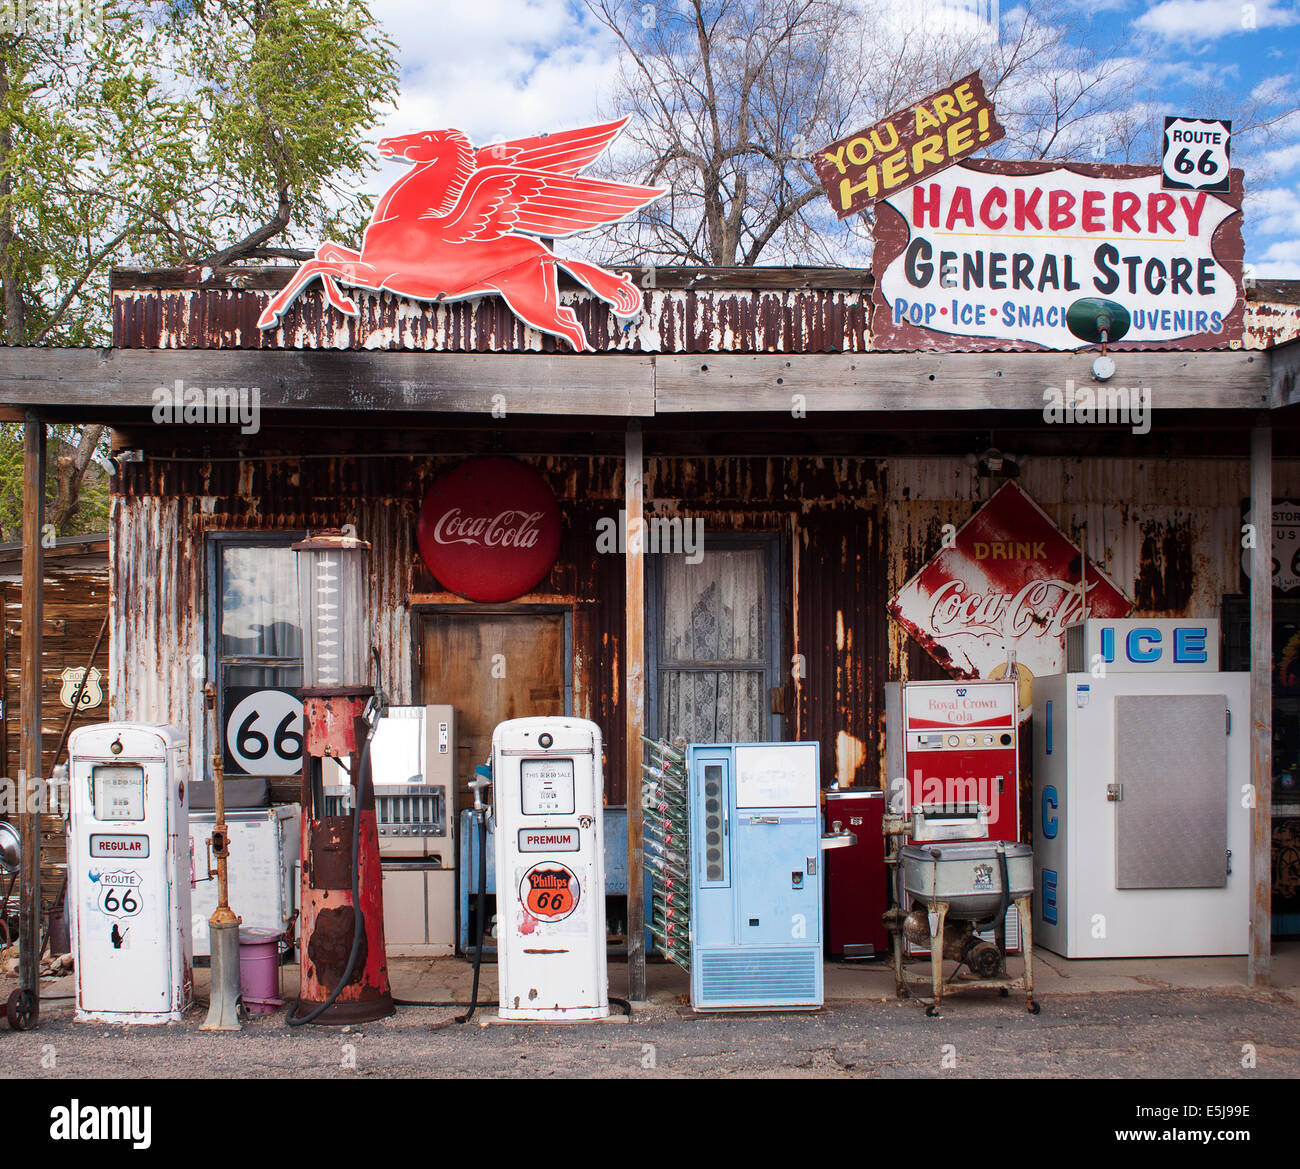 Hackberry General Store in Arizona on old Route 66 Stock Photo